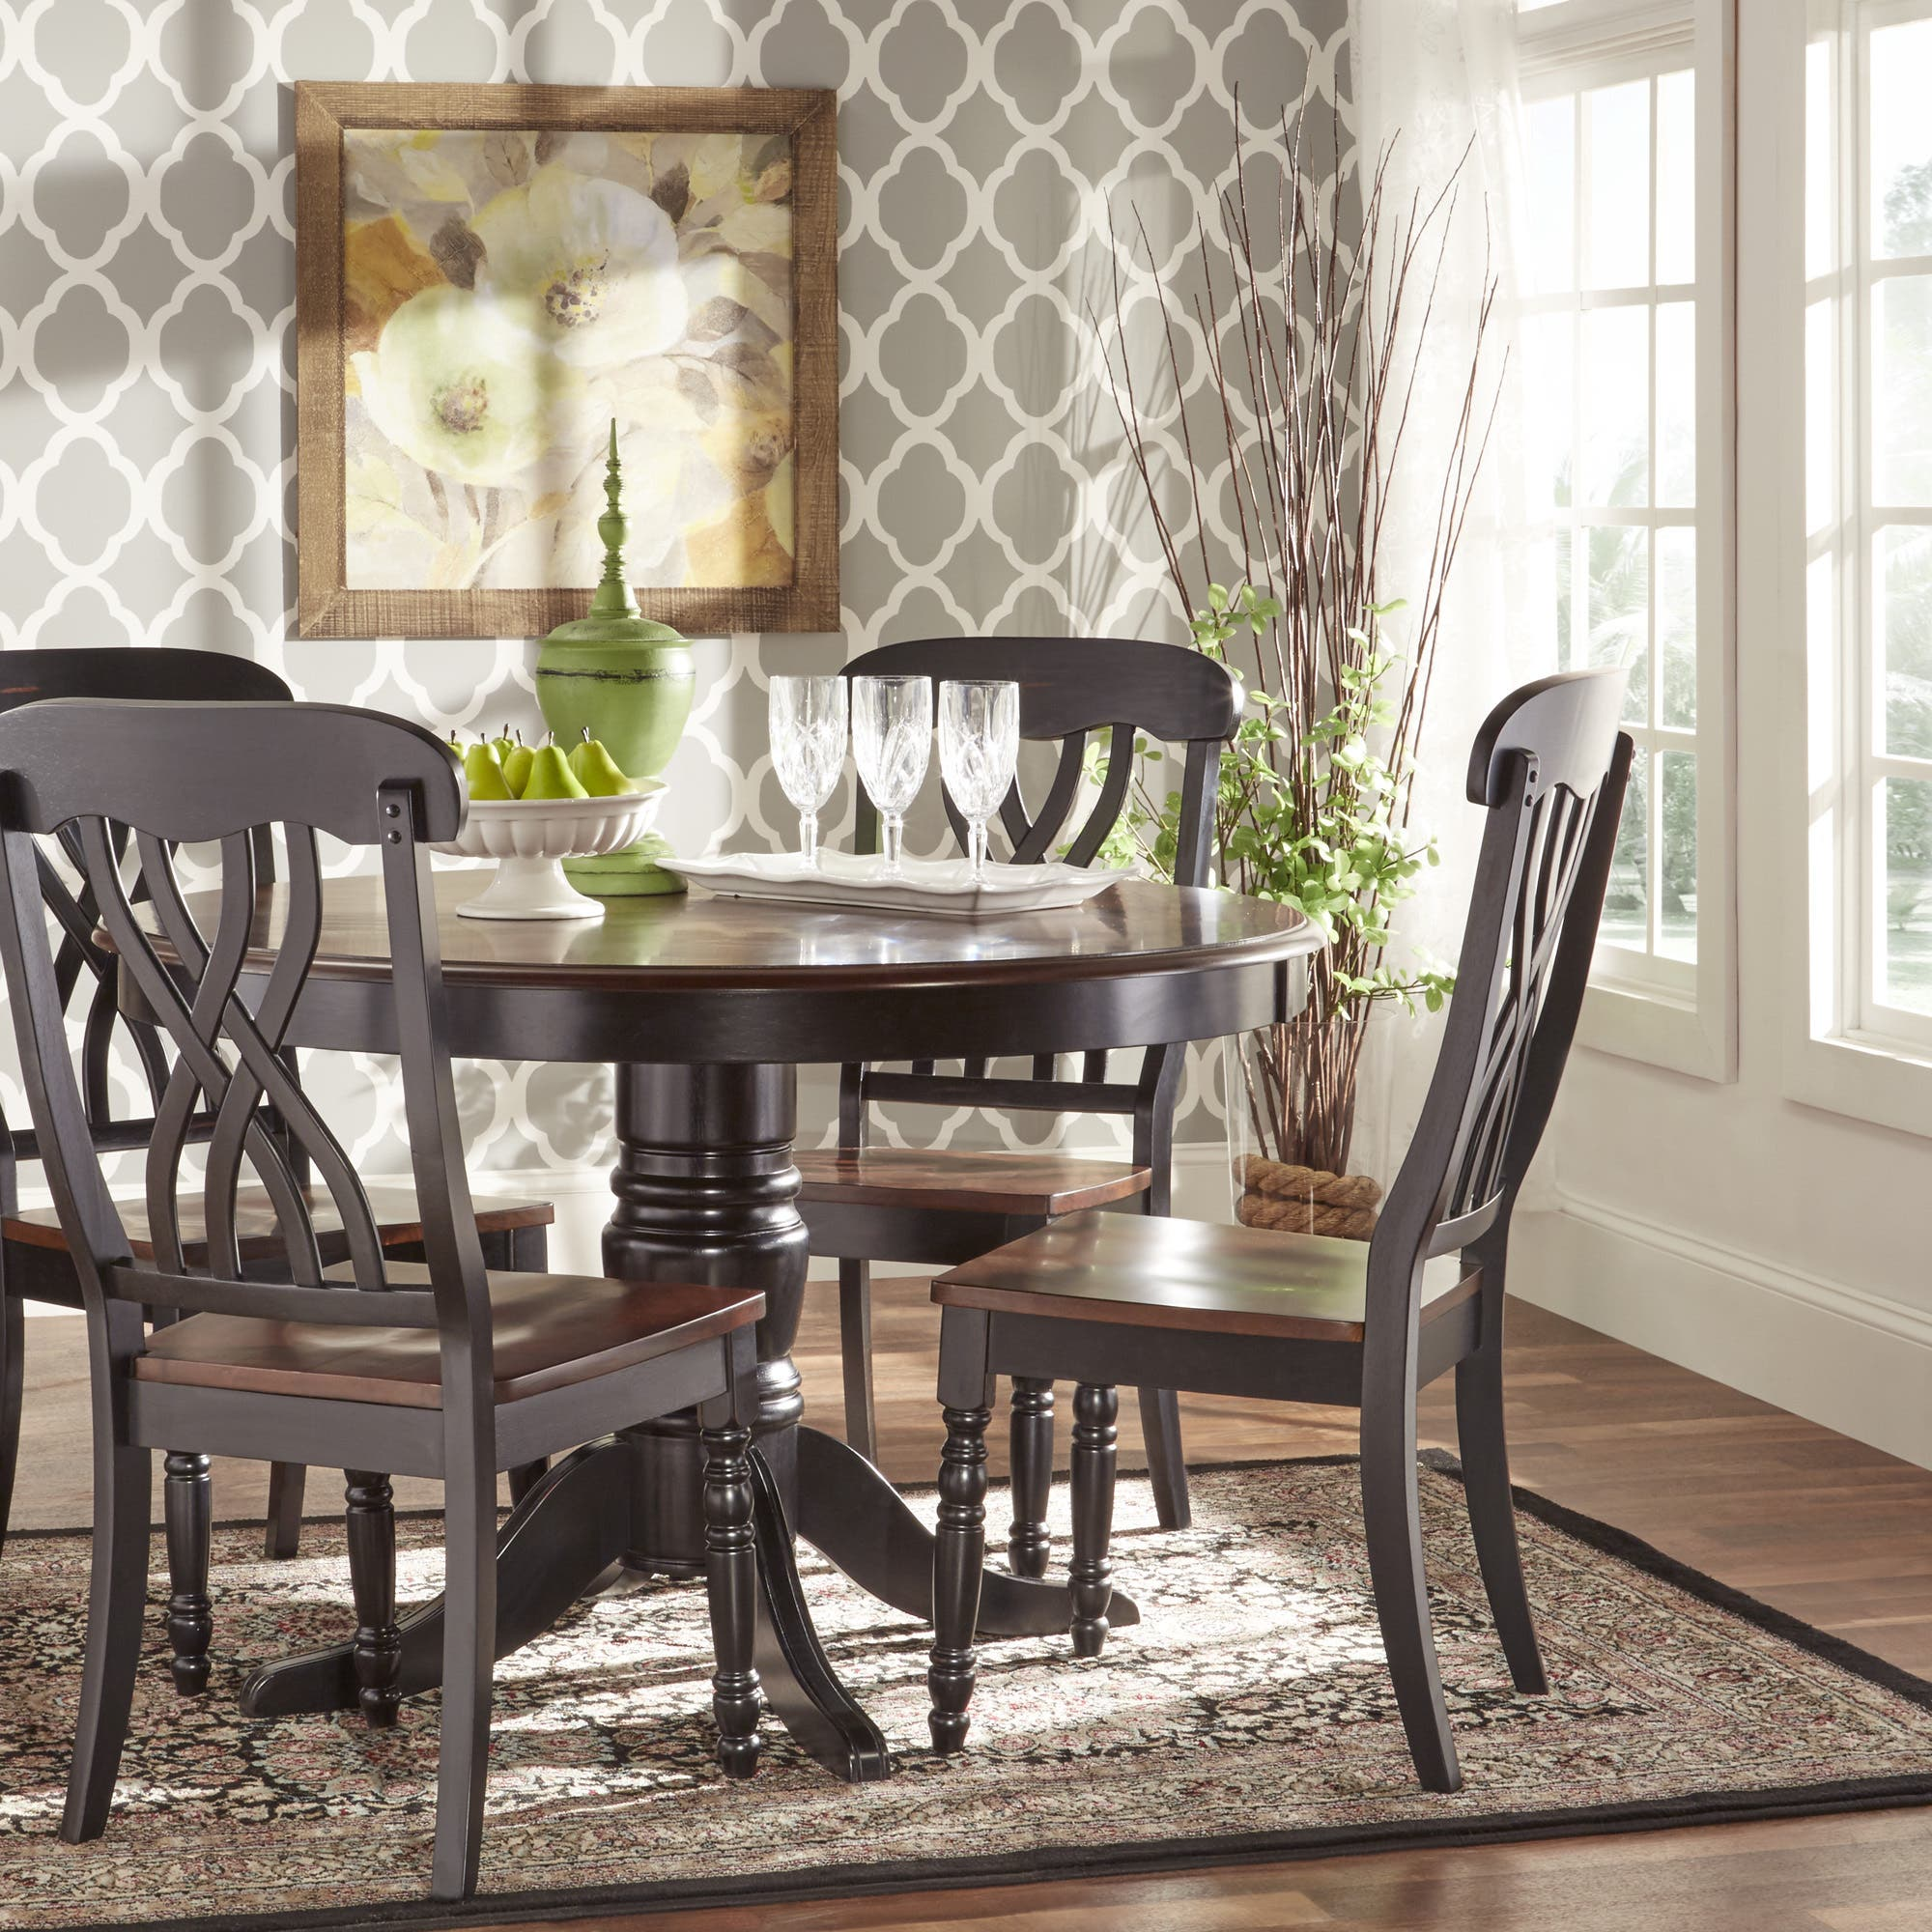 Country Kitchen Dining Set: Buy Kitchen & Dining Room Sets Online At Overstock.com